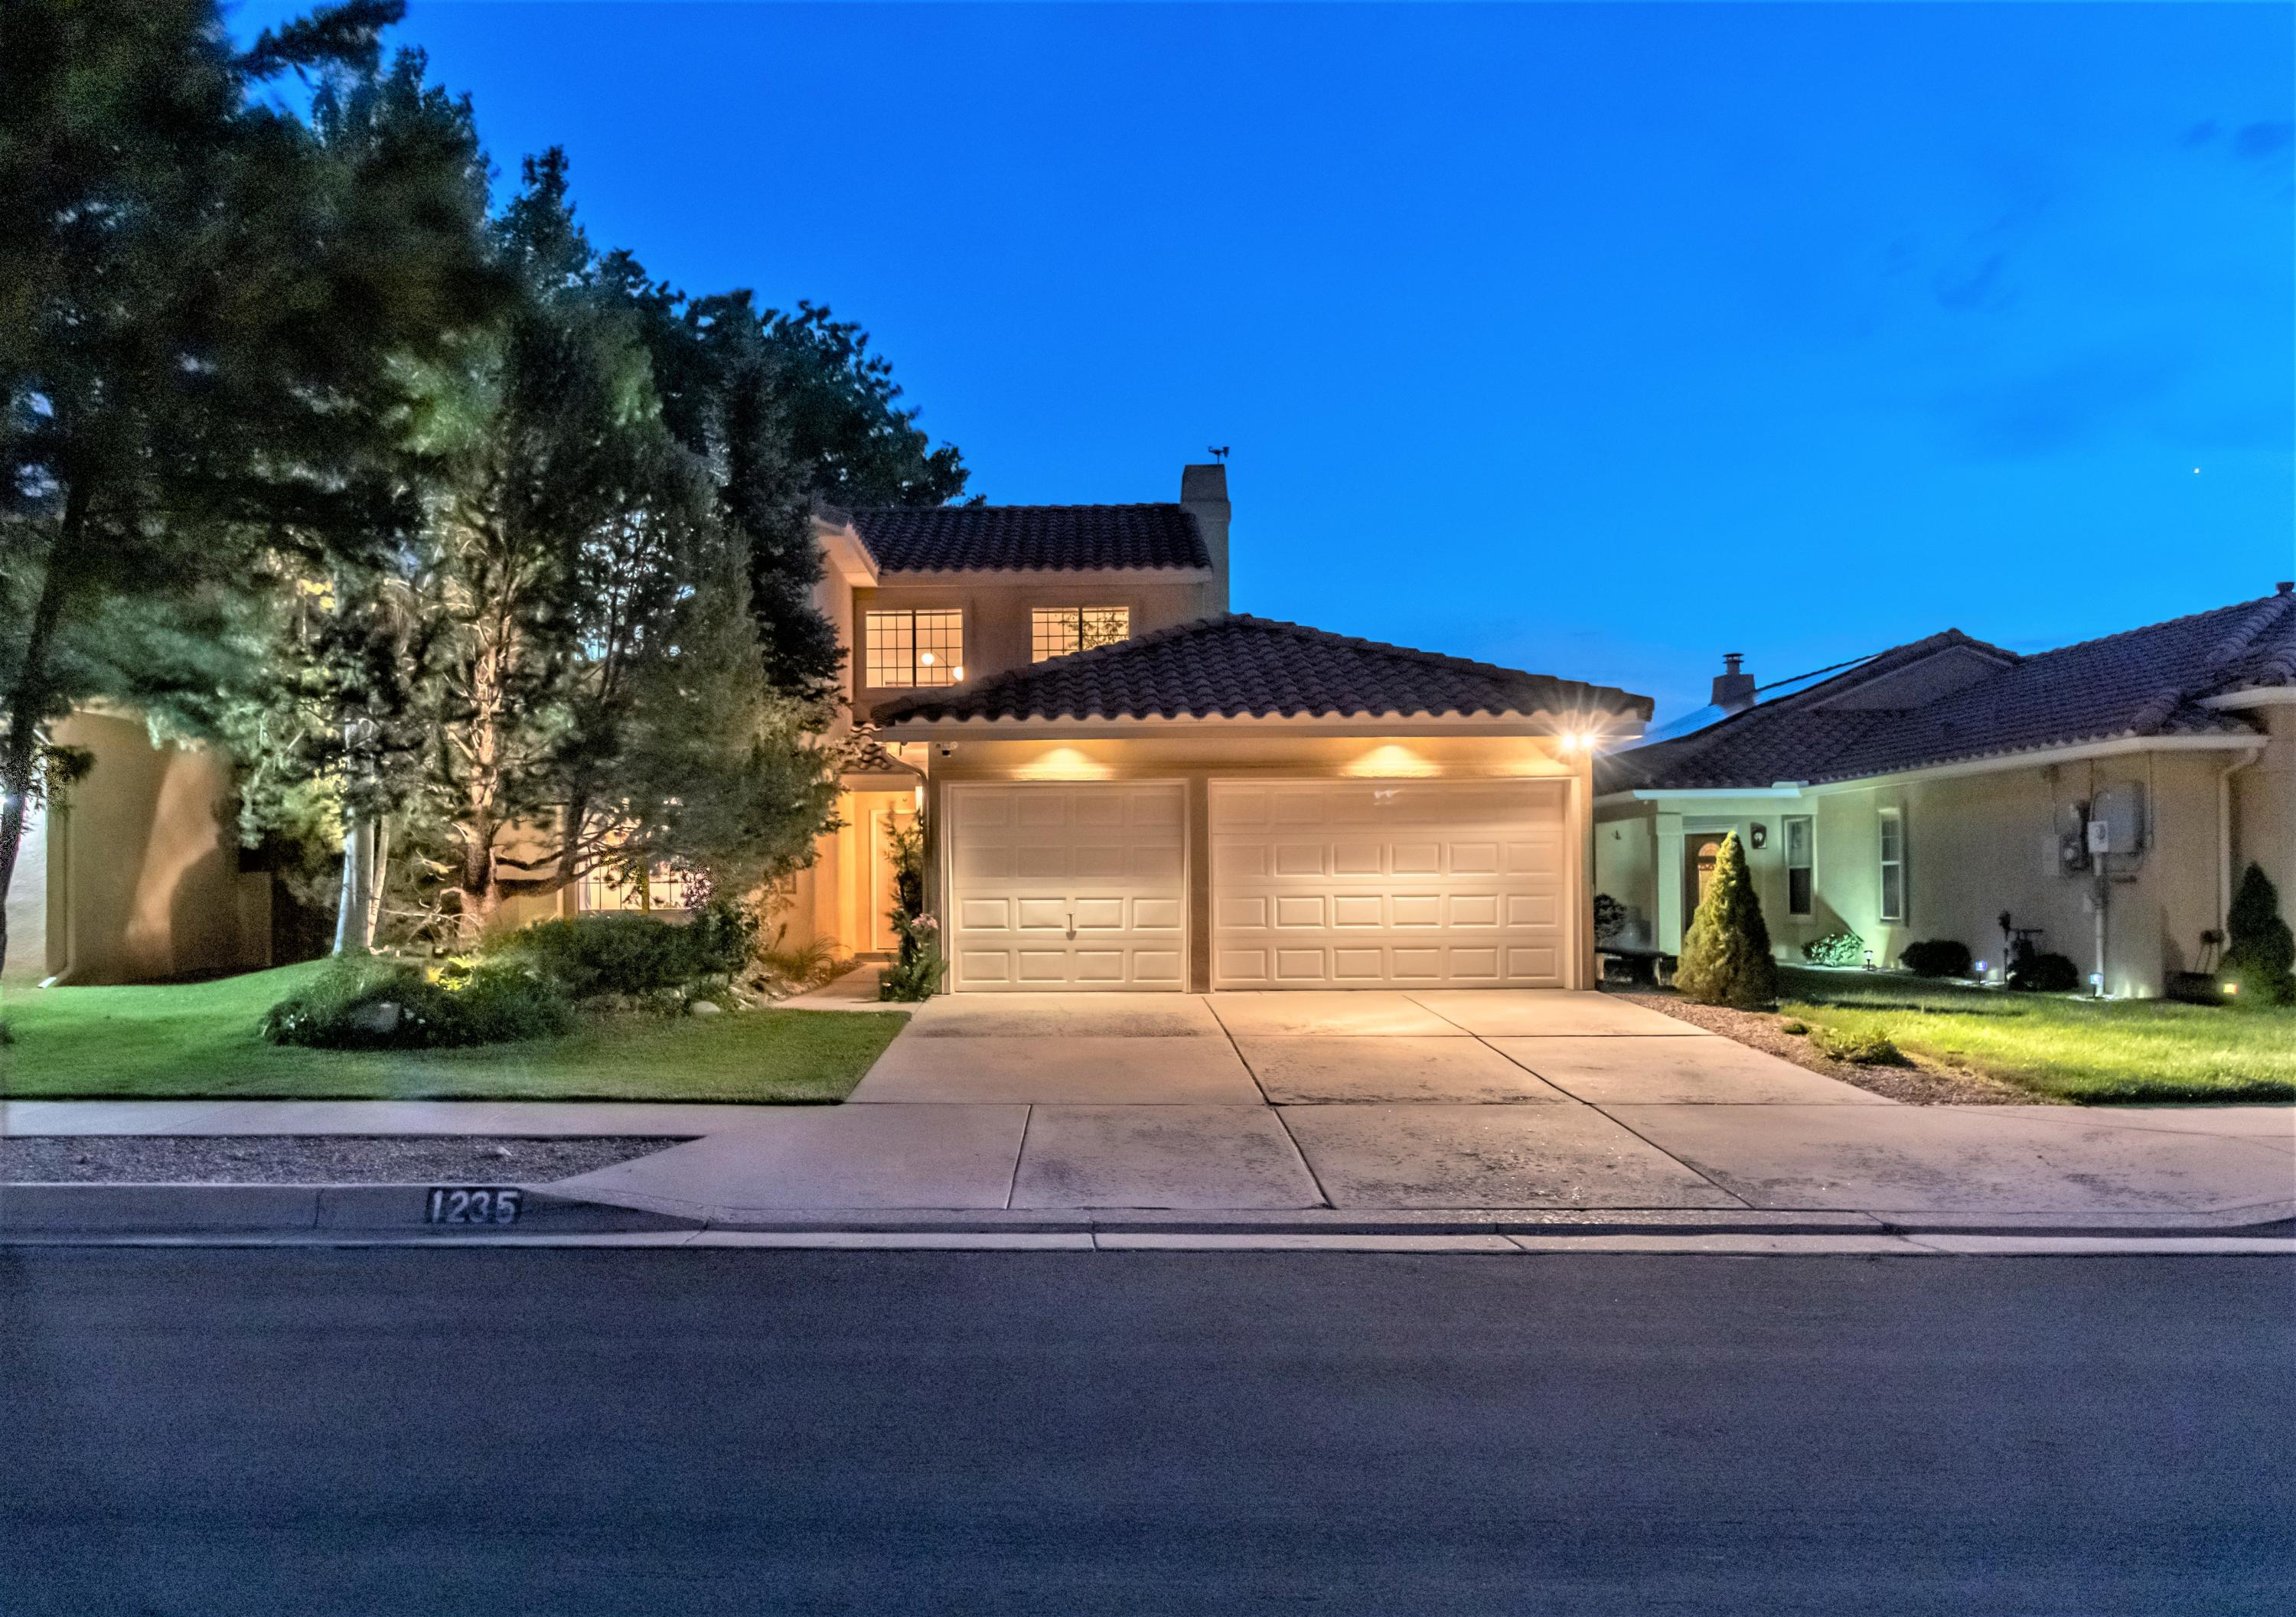 **Open House this Sunday 7/25 from 1pm-3pm**Nestled at the base of the foothills you will find this wonderful light and bright home build by Paul Newman.  This 4 bedroom 2.5 bathroom bi-level home with the main living areas on the upper level that takes advantage of the fabulous views.  Open floor plan with the great room opening up to the kitchen and dining room with a gas fireplace complete with a built in projector screen.  The primary bedroom is on the main floor with its own access to the back yard.  All secondary bedroom are good sized.  The three car garage with lots of shelving for extra storage.  This is definitely a must see .